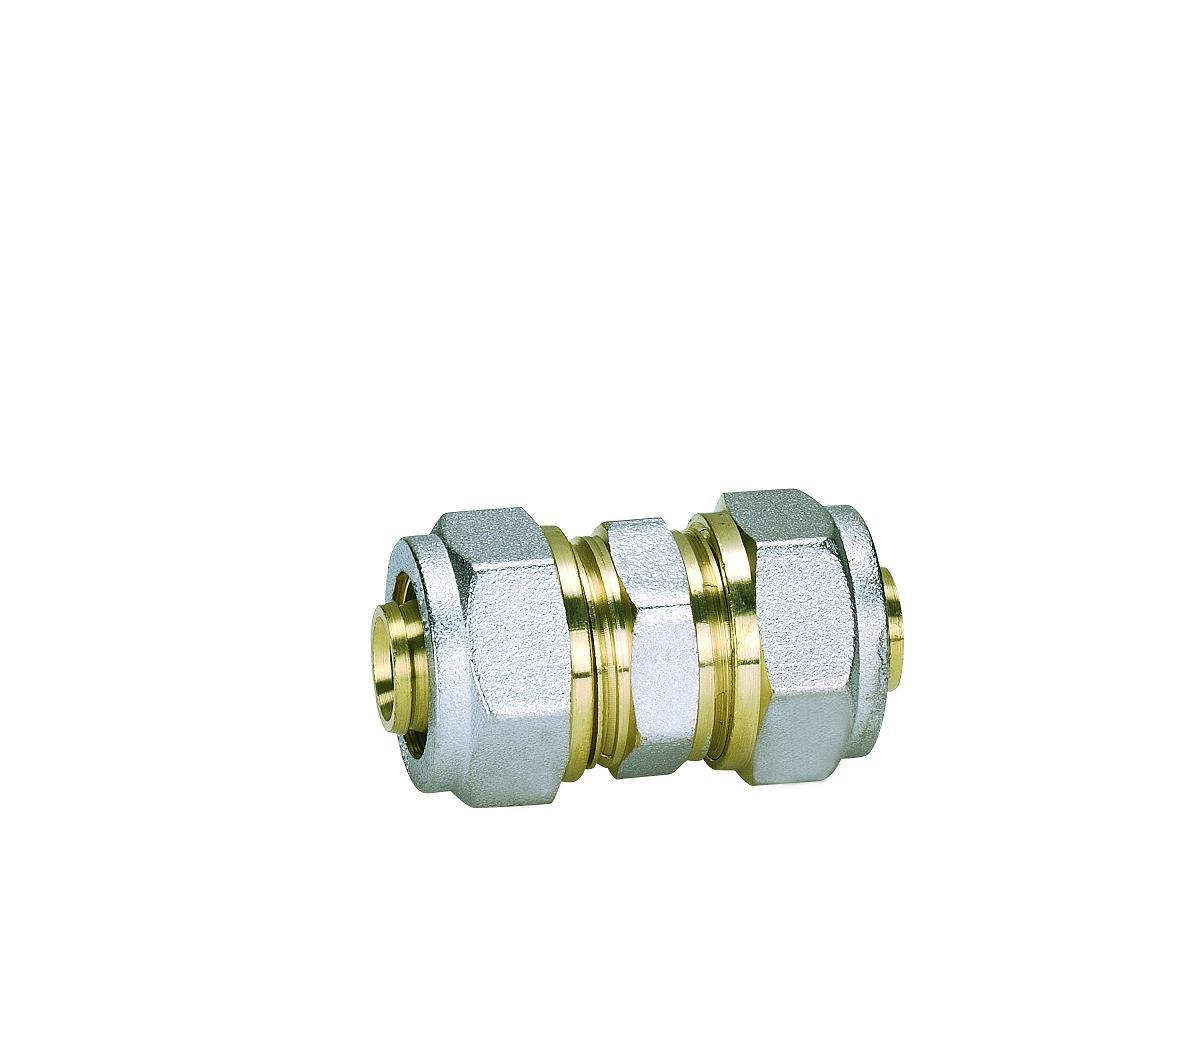 Brass Fittings for Pex-Al-Pex Pipe _Equal Straight Connector (Hz8019)